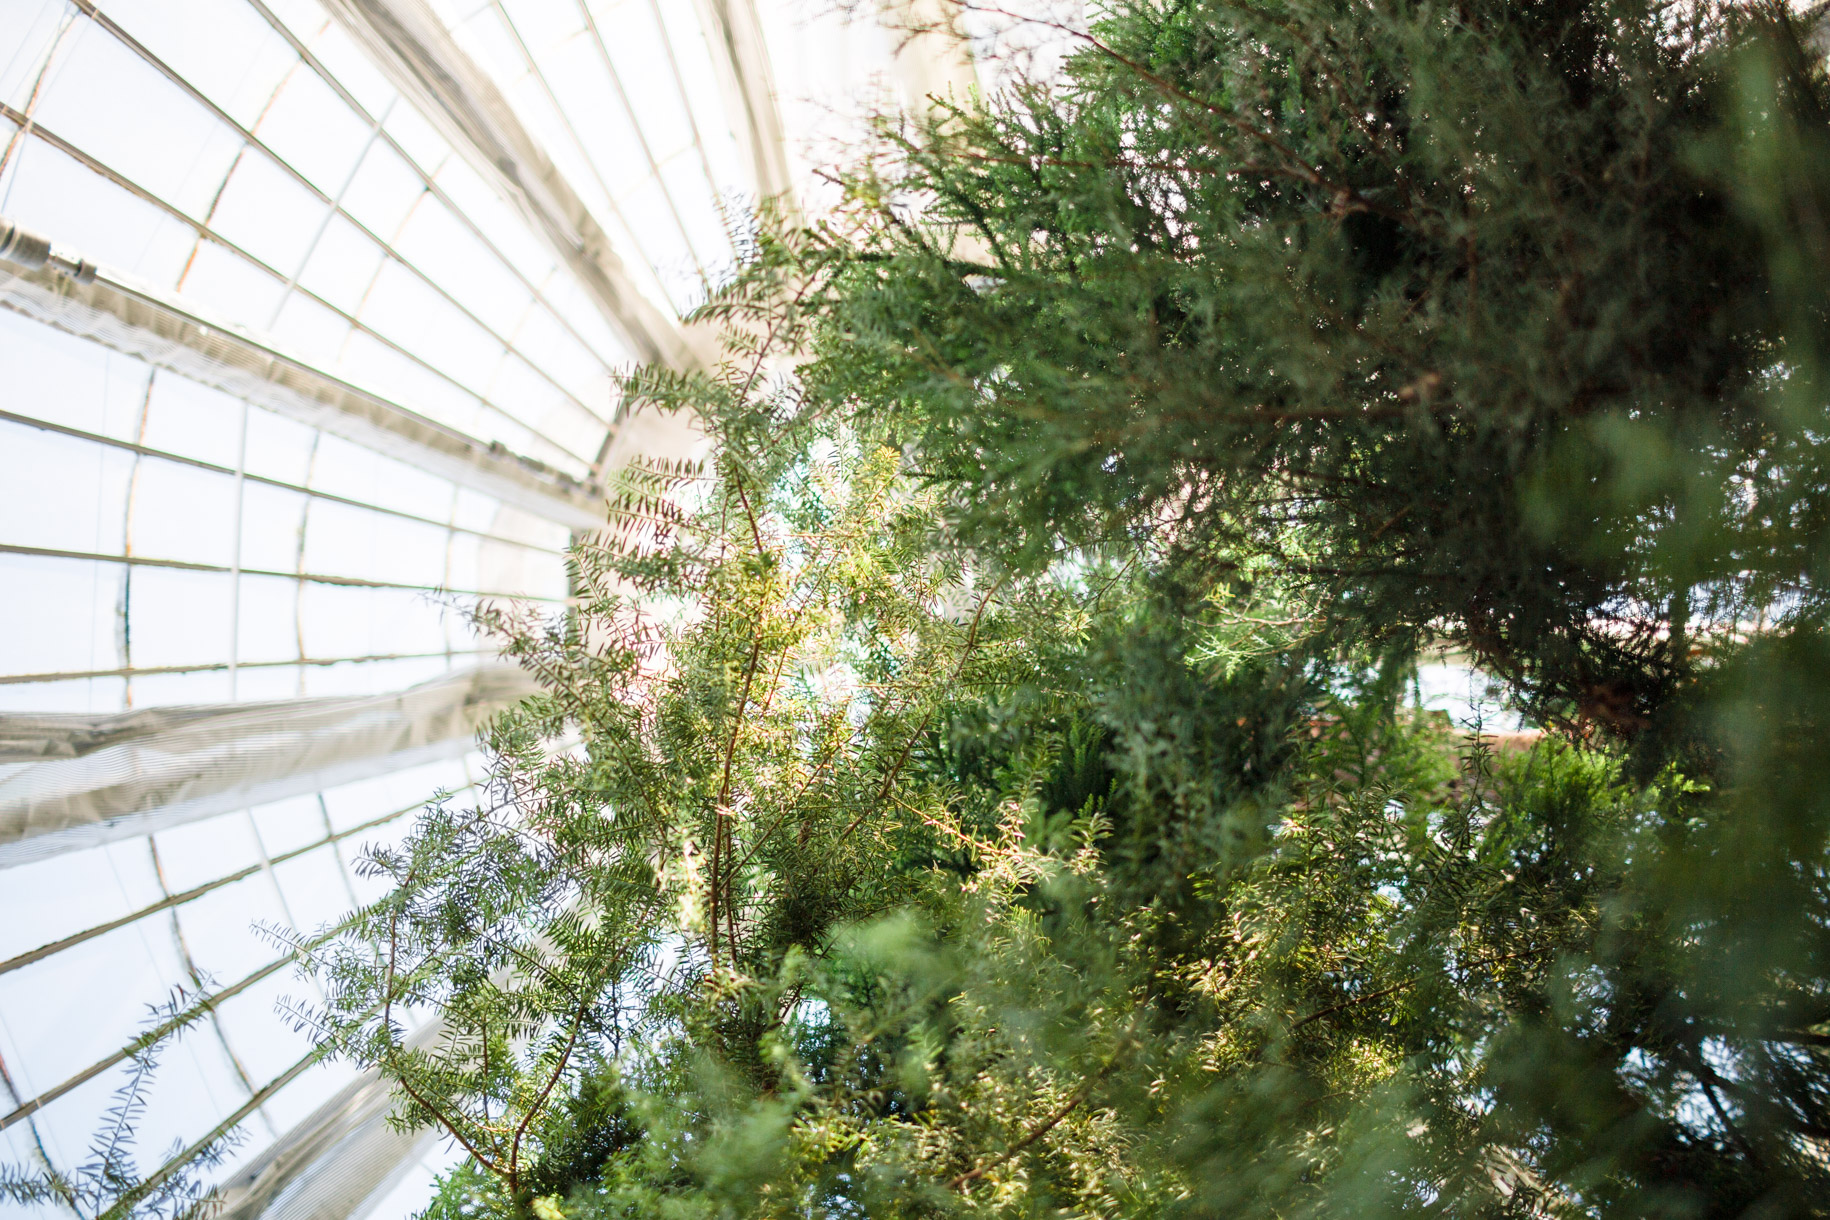 Looking up into the glass ceiling at the Botanisk Have in Copenhagen, Denmark.